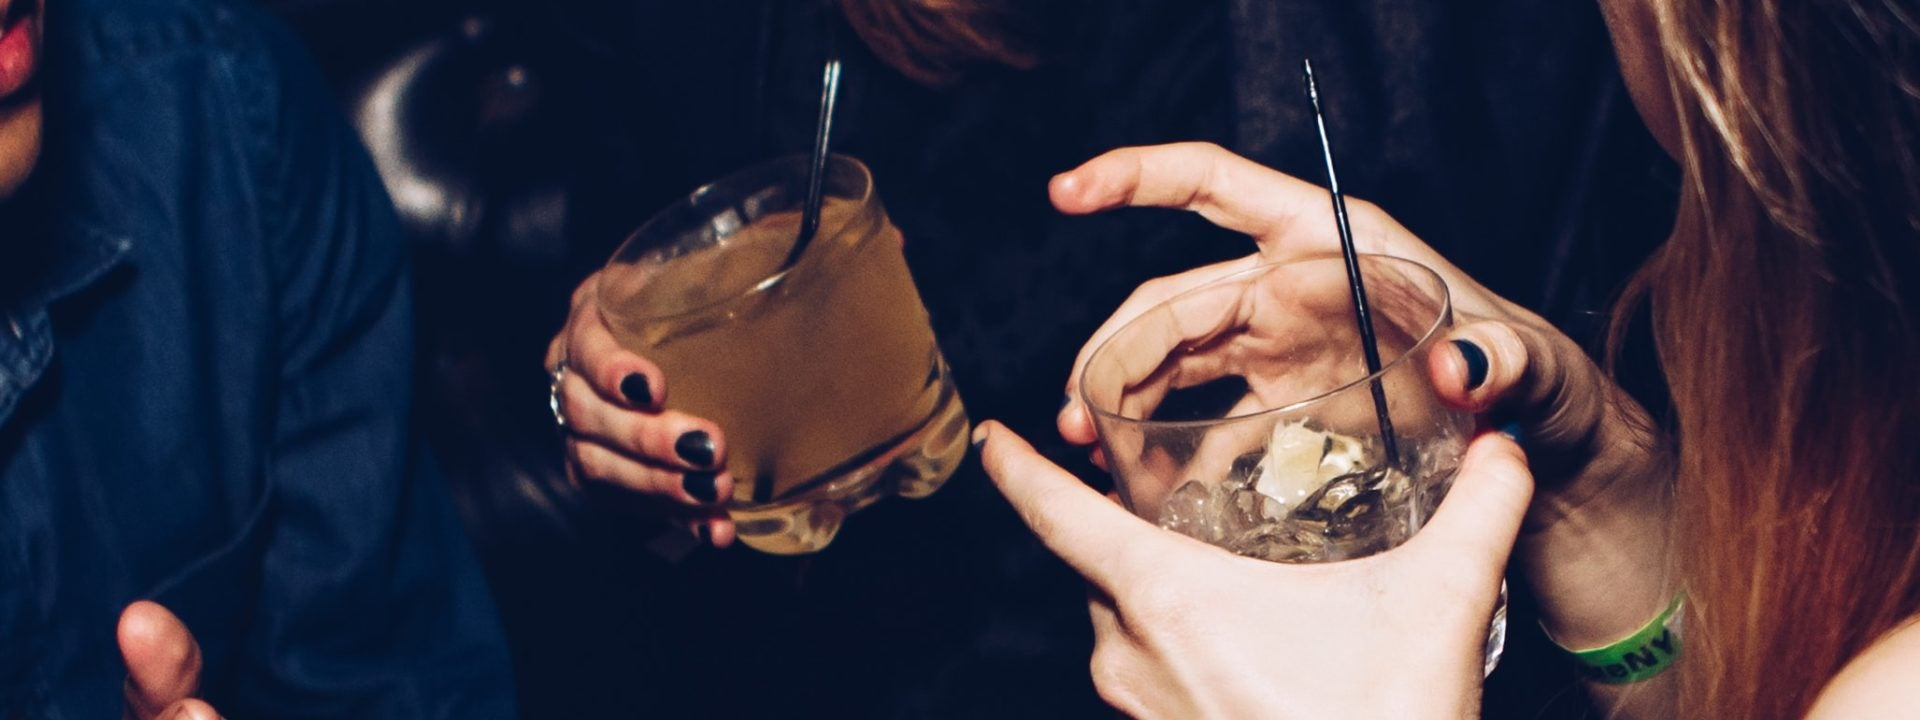 6 ways millennials have changed drinking forever